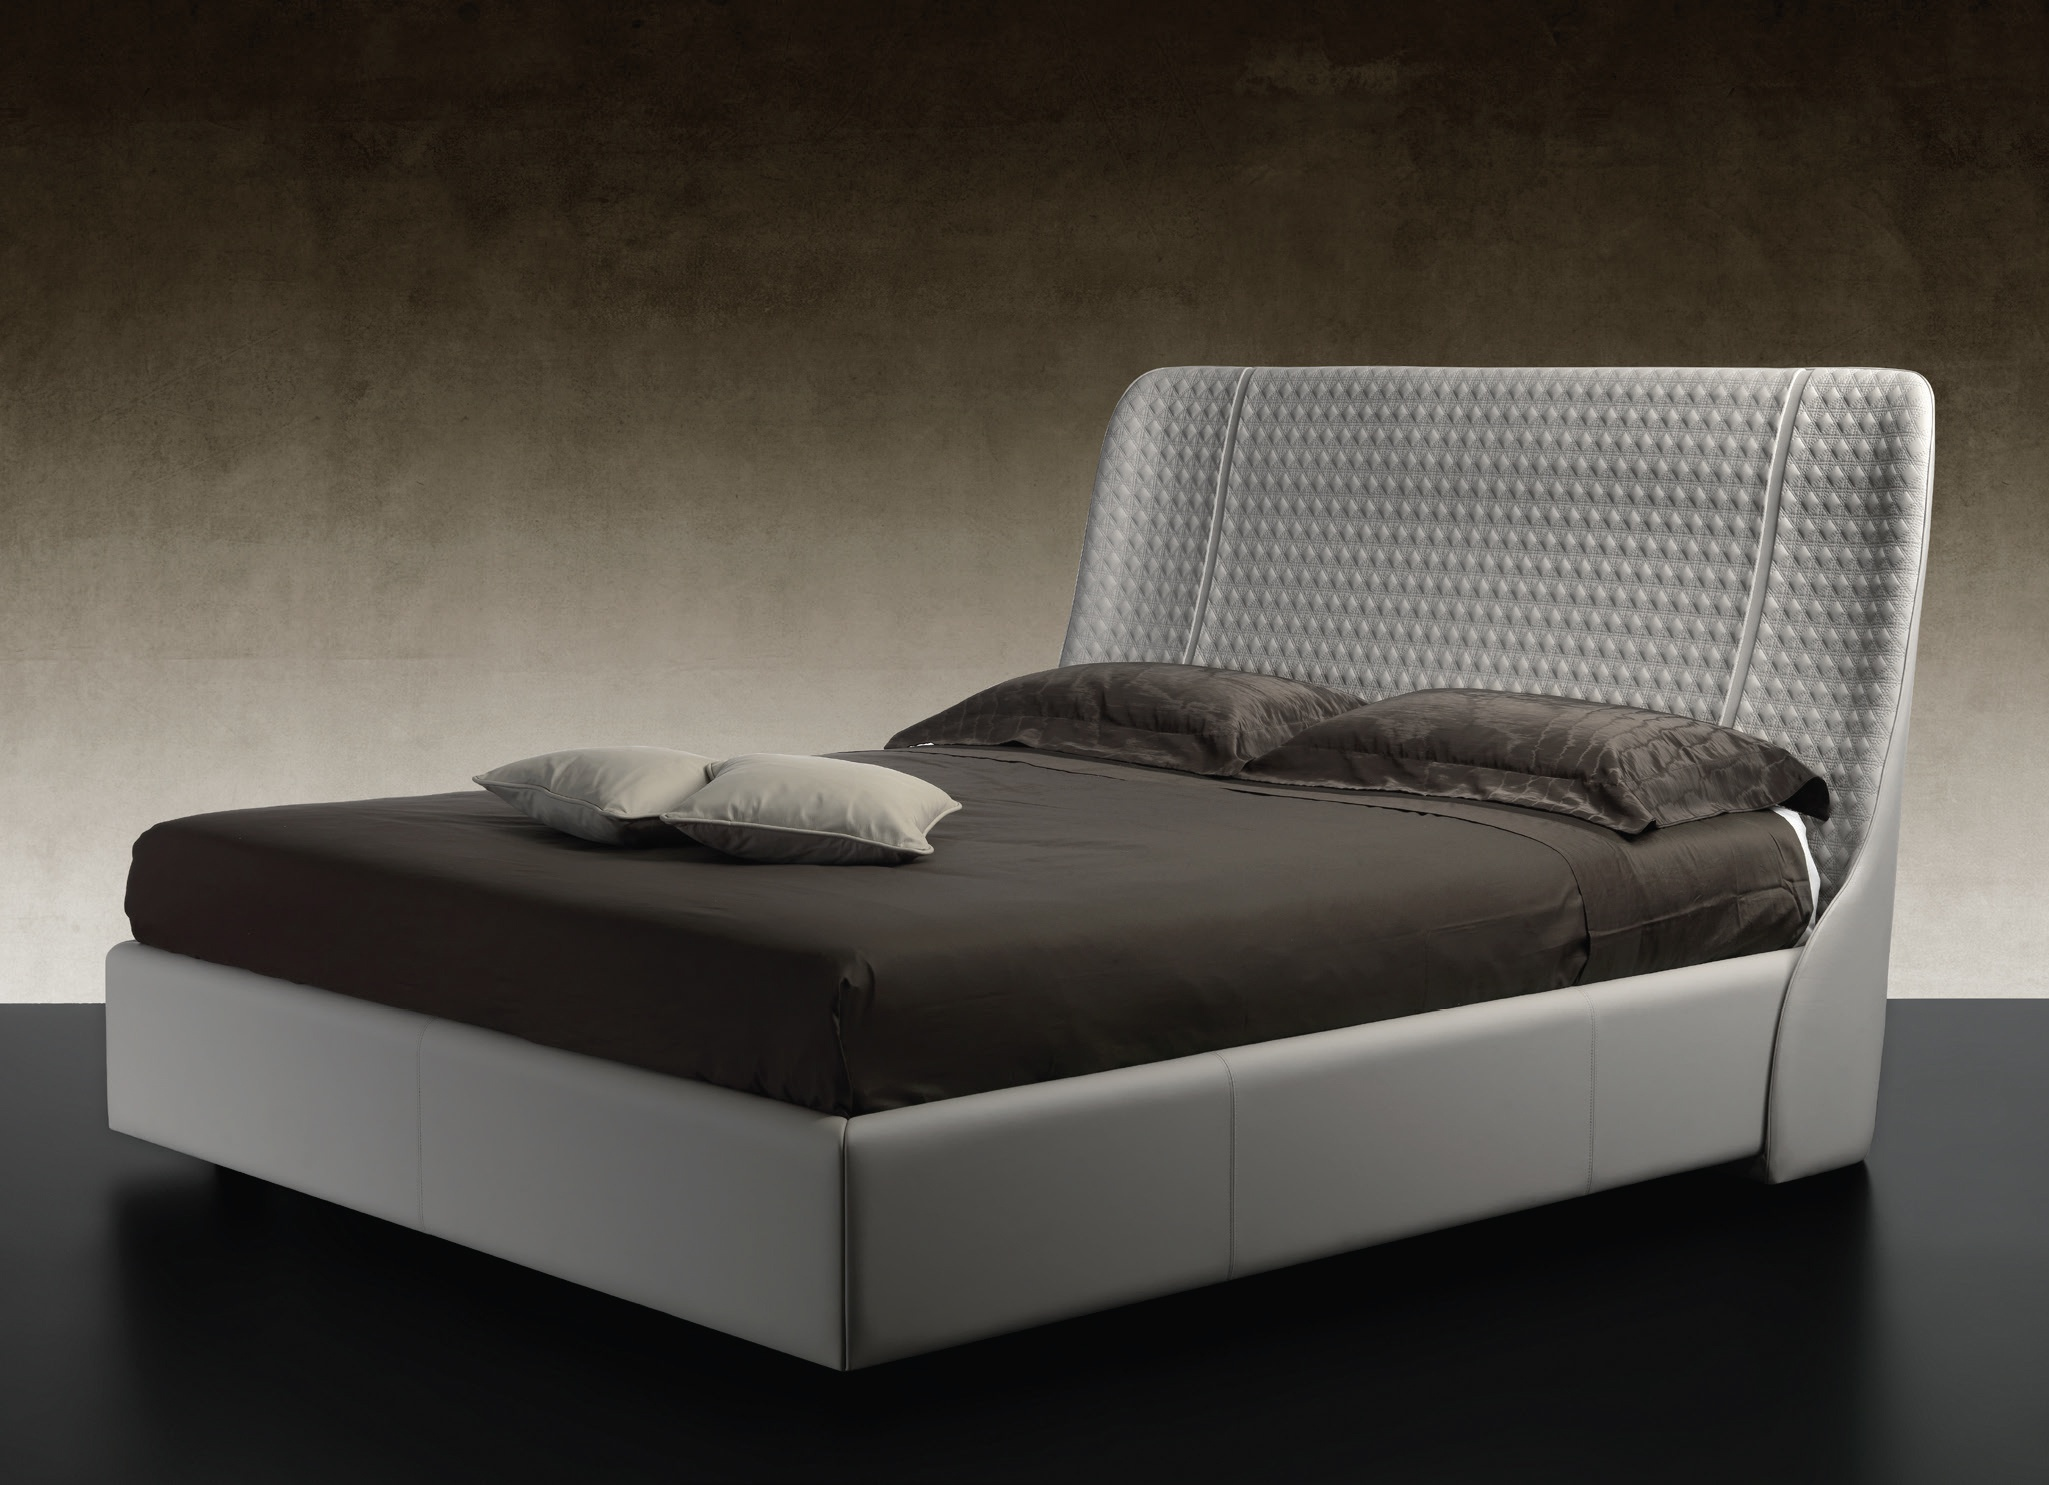 Swan Modern Platform Bed: Double Bed With Headboard Upholstered In Embossed Swan